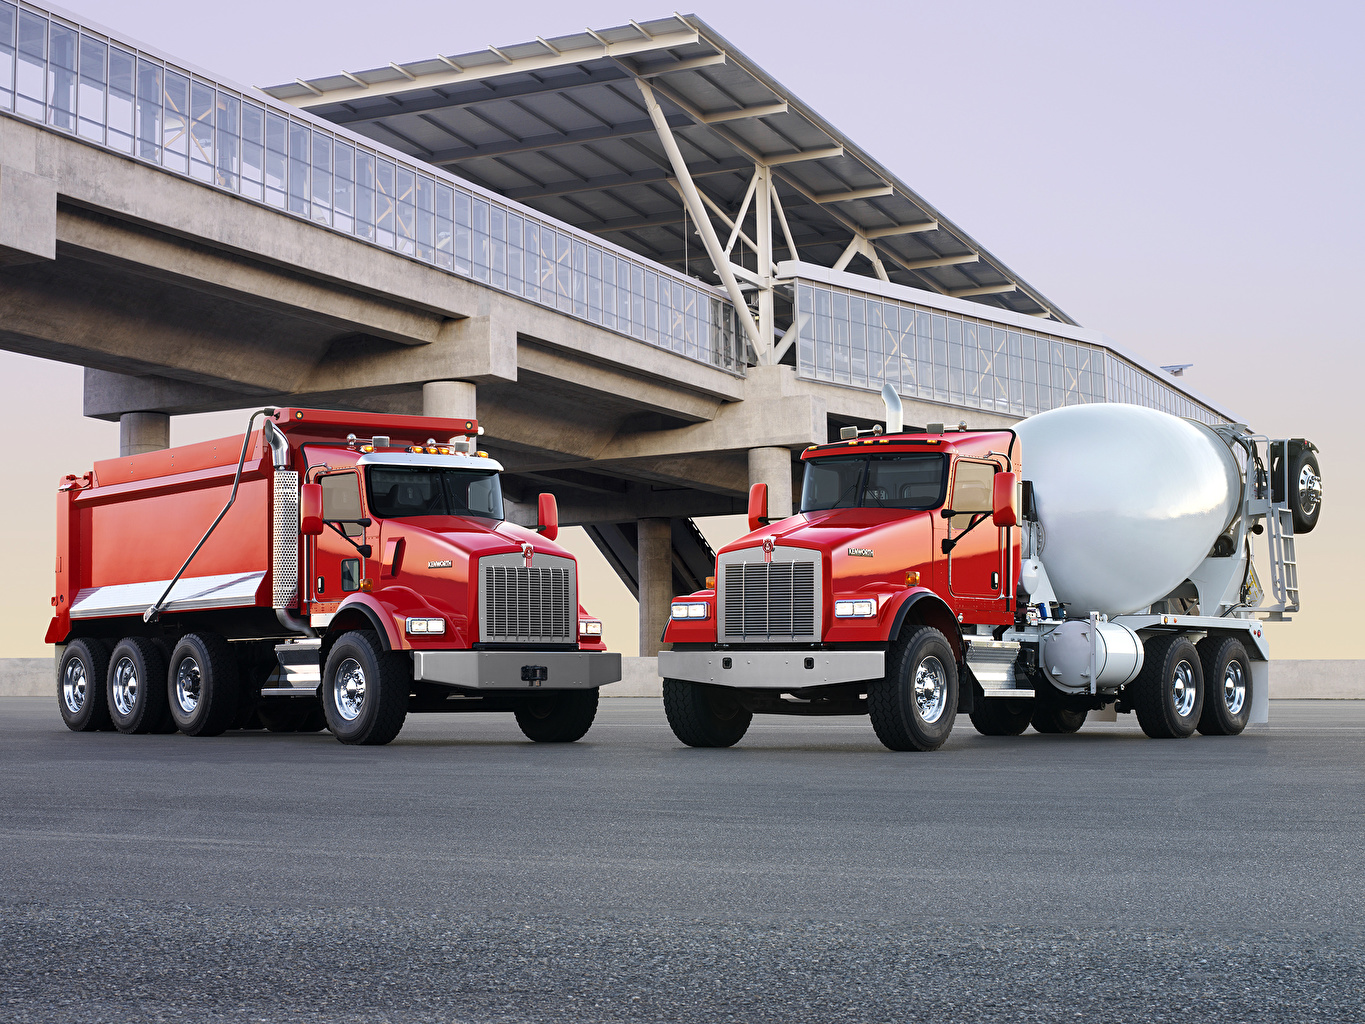 Picture lorry Kenworth T800 Two Red Cars Metallic Trucks 2 auto automobile